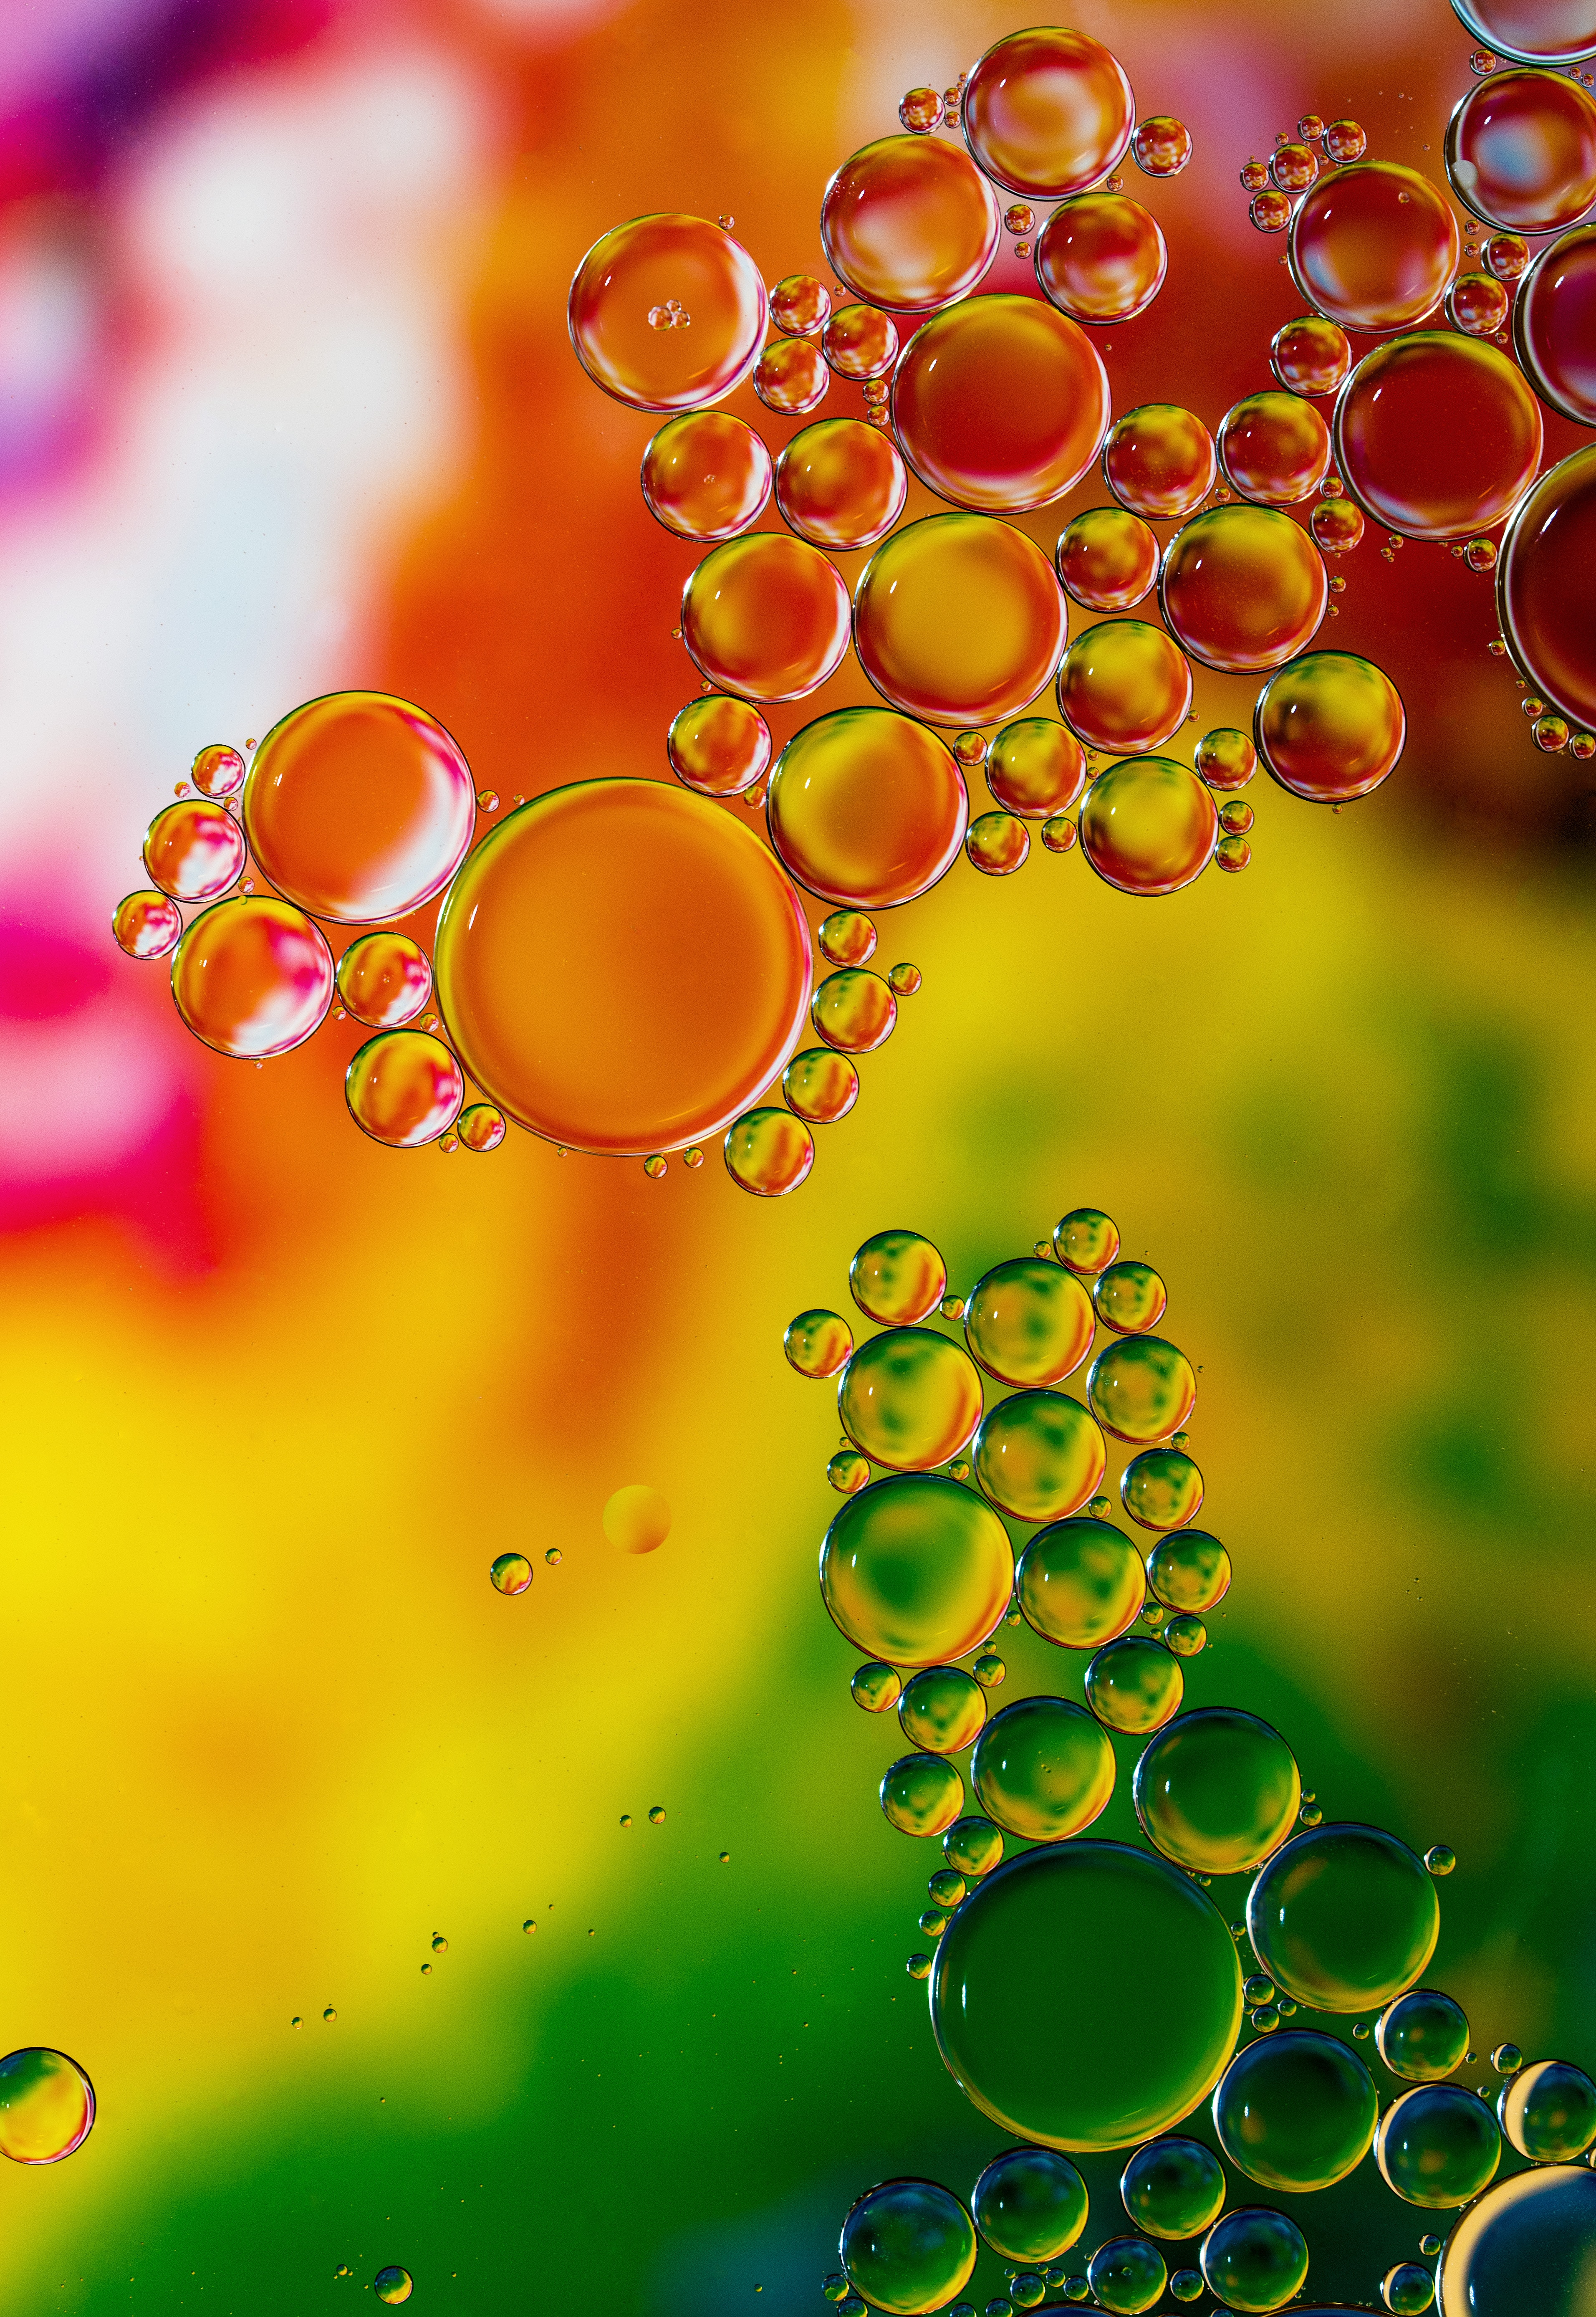 100595 download wallpaper Macro, Liquid, Transparent, Multicolored, Motley, Bubbles screensavers and pictures for free